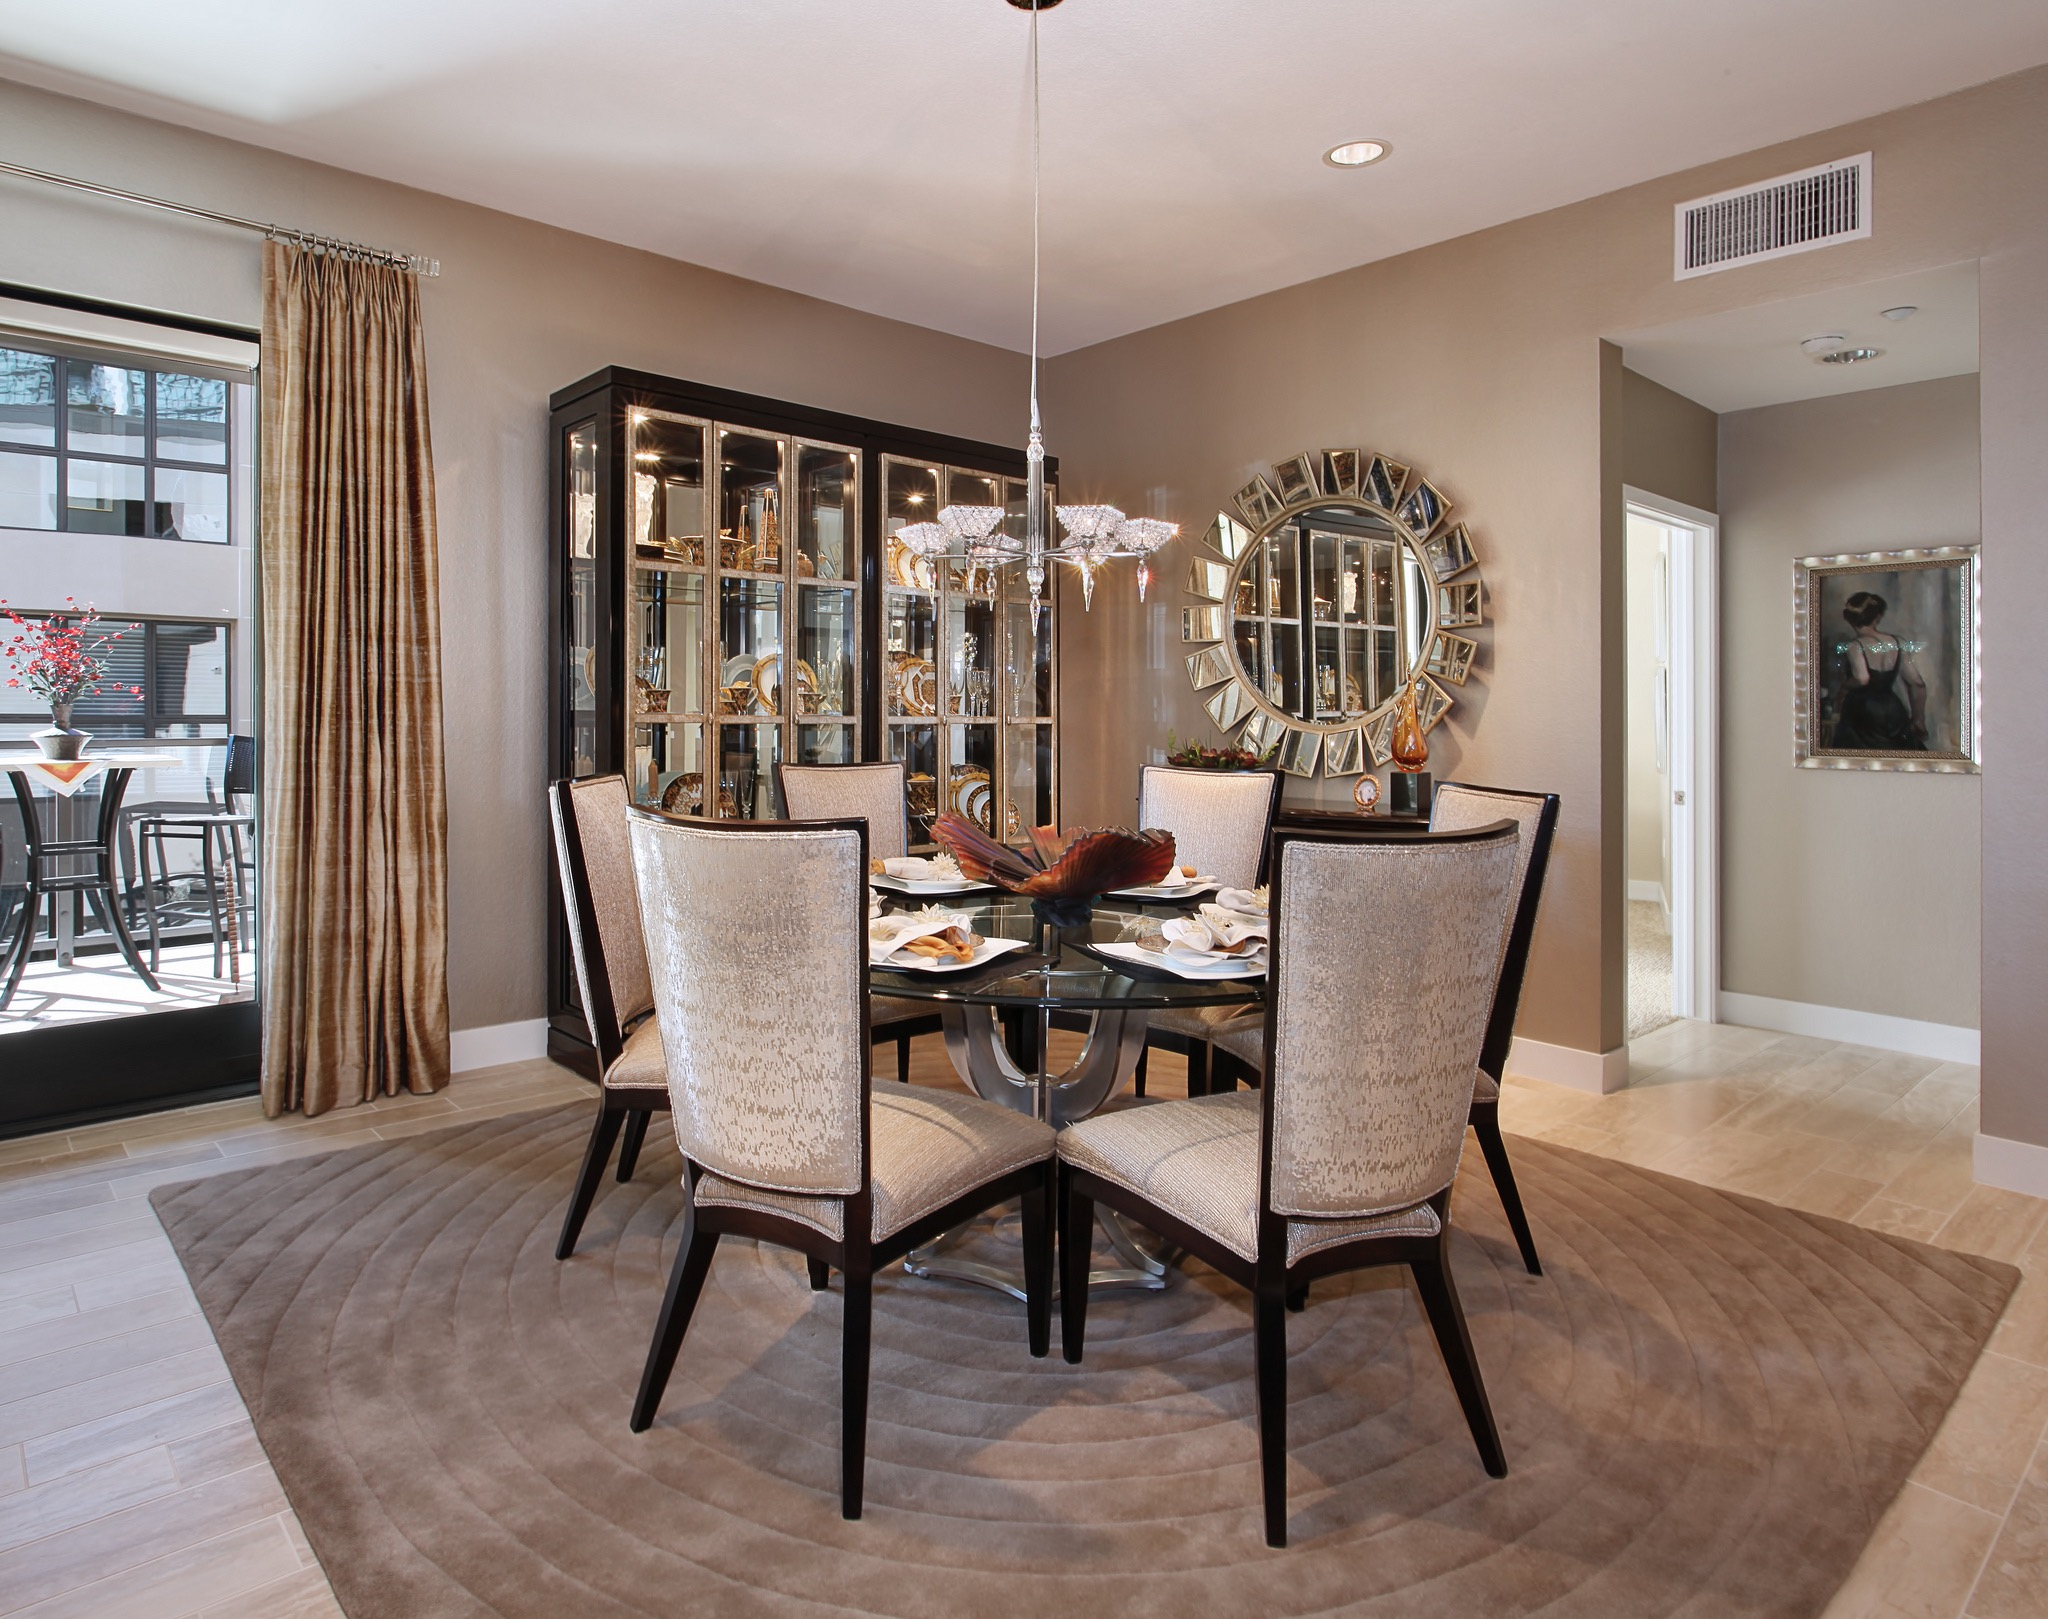 Glamorous Formal Dining Room With Round Table (View 22 of 30)